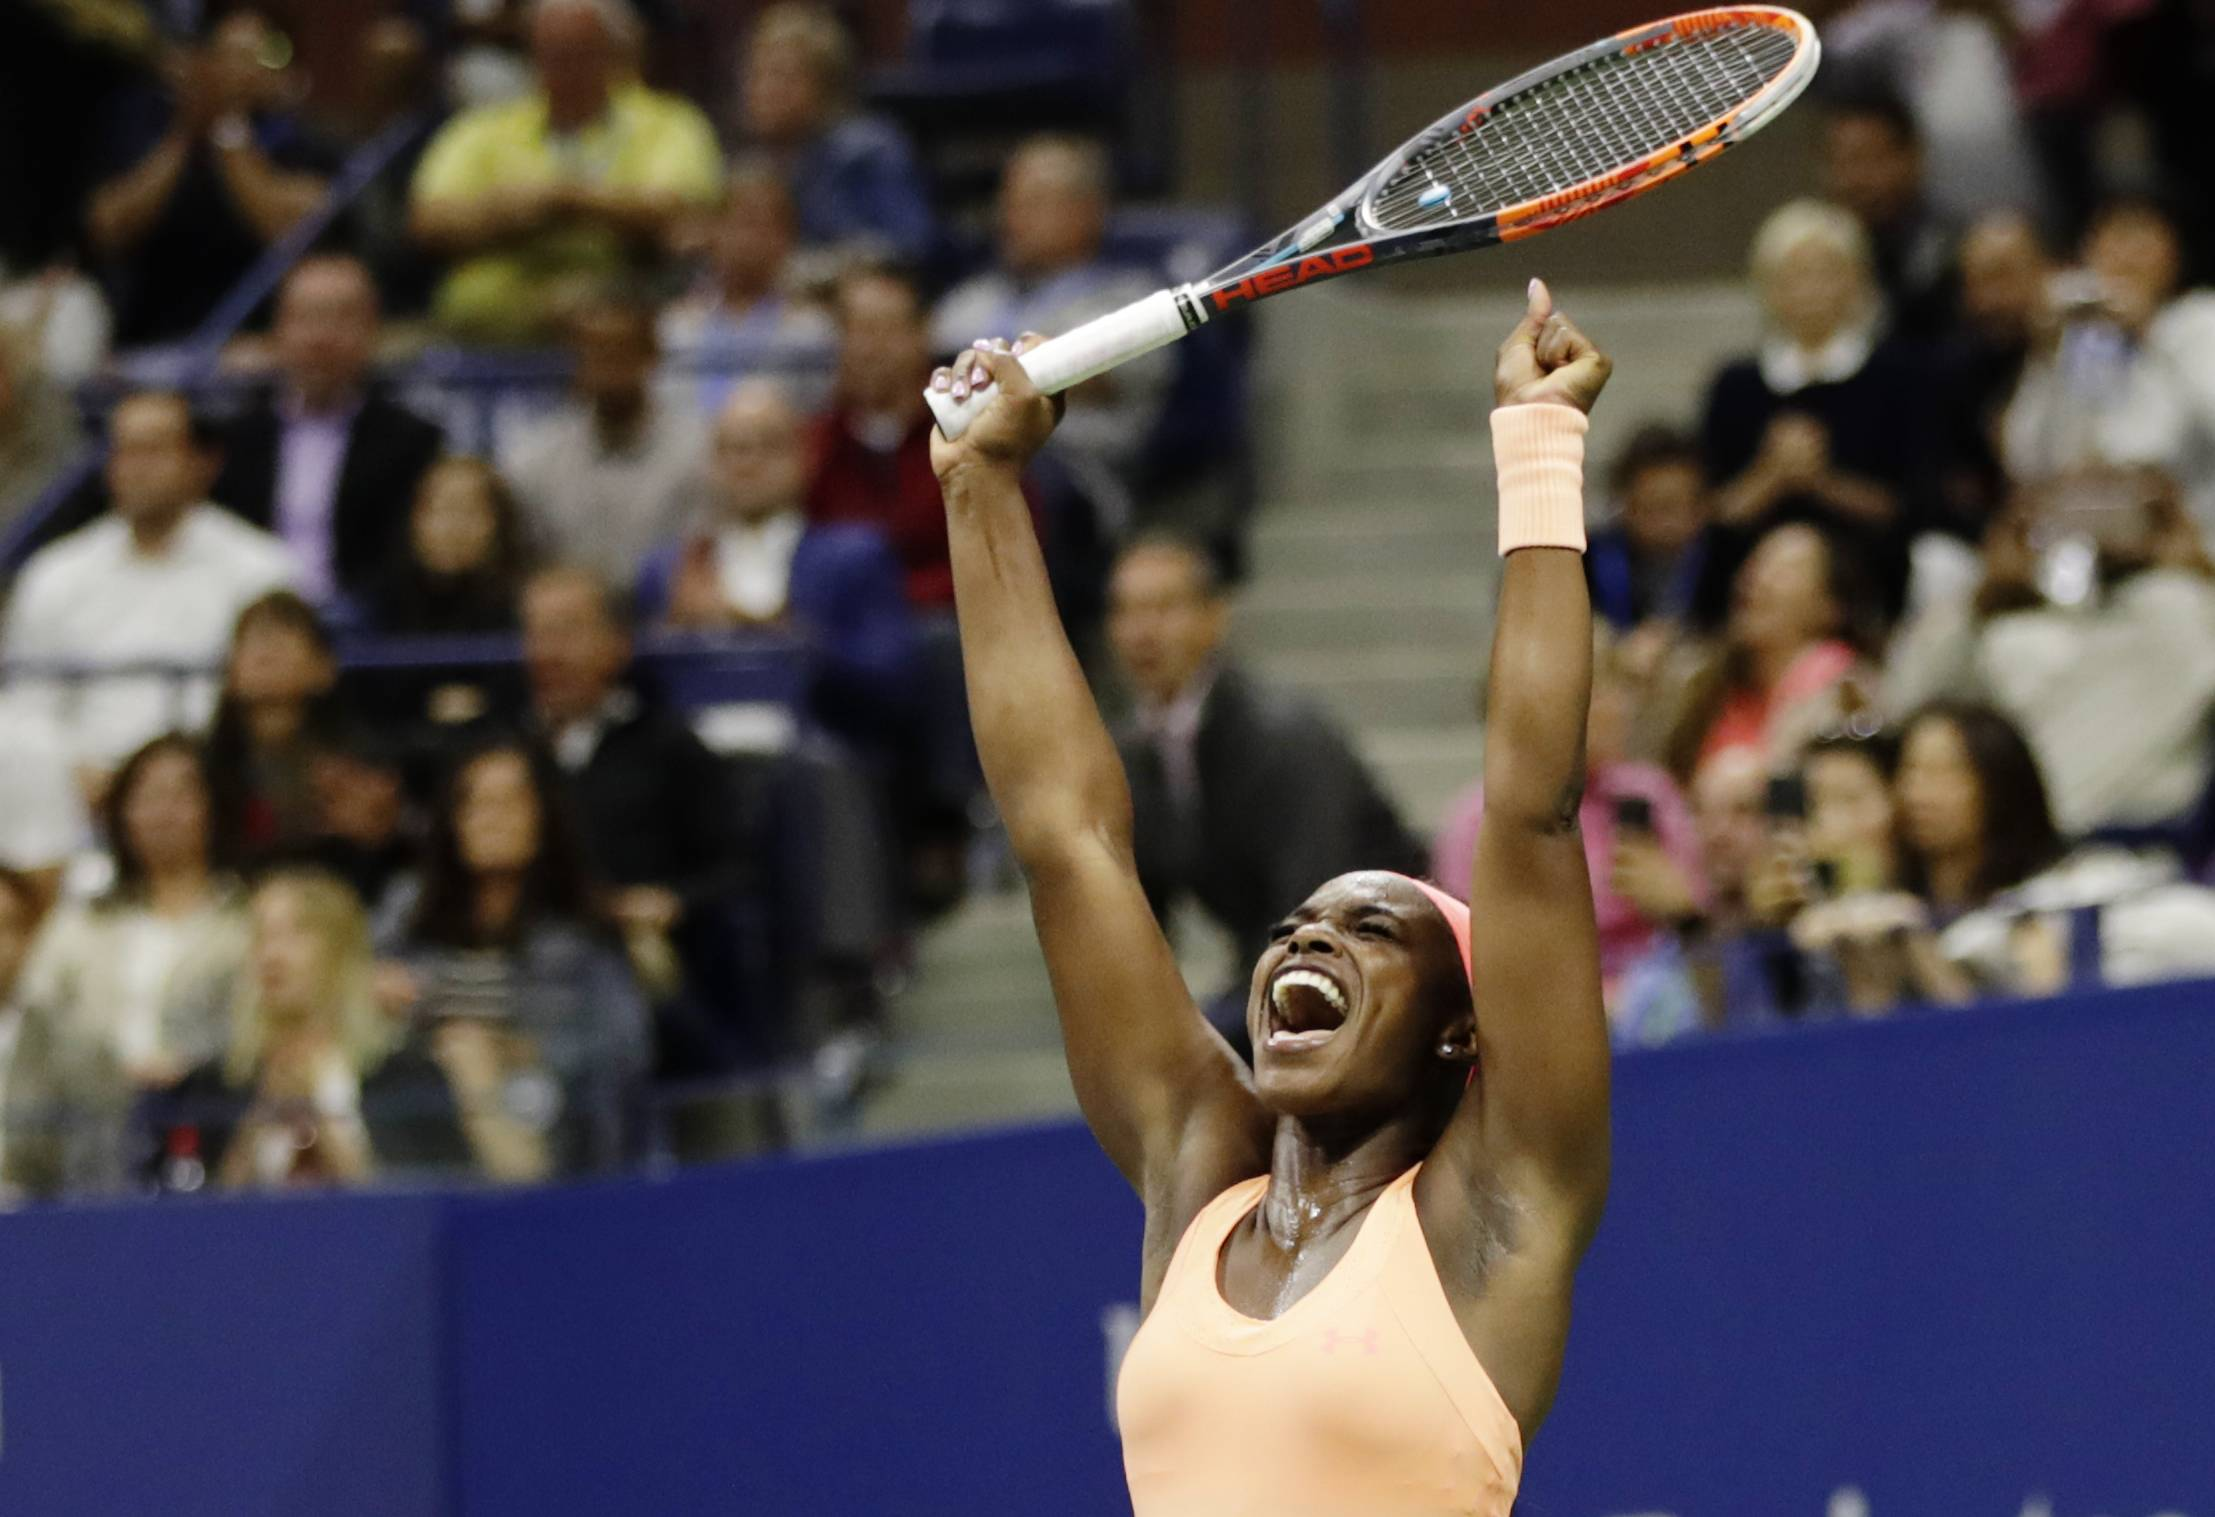 Sloane Stephens had surgery for a stress fracture in her foot back in January, and less than a year later won her first major title.